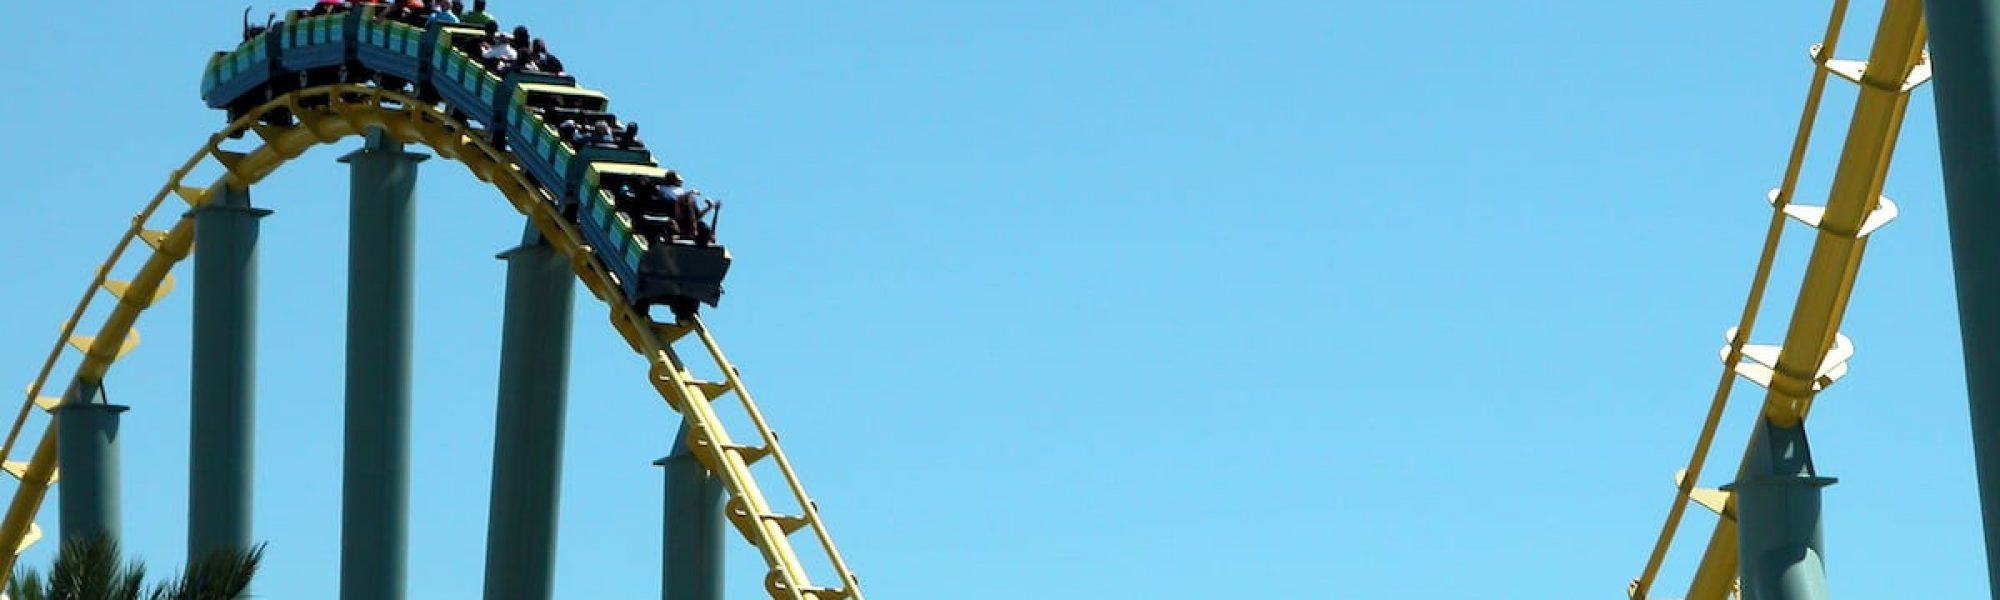 Rollercoaster at Six Flags Amusement Park